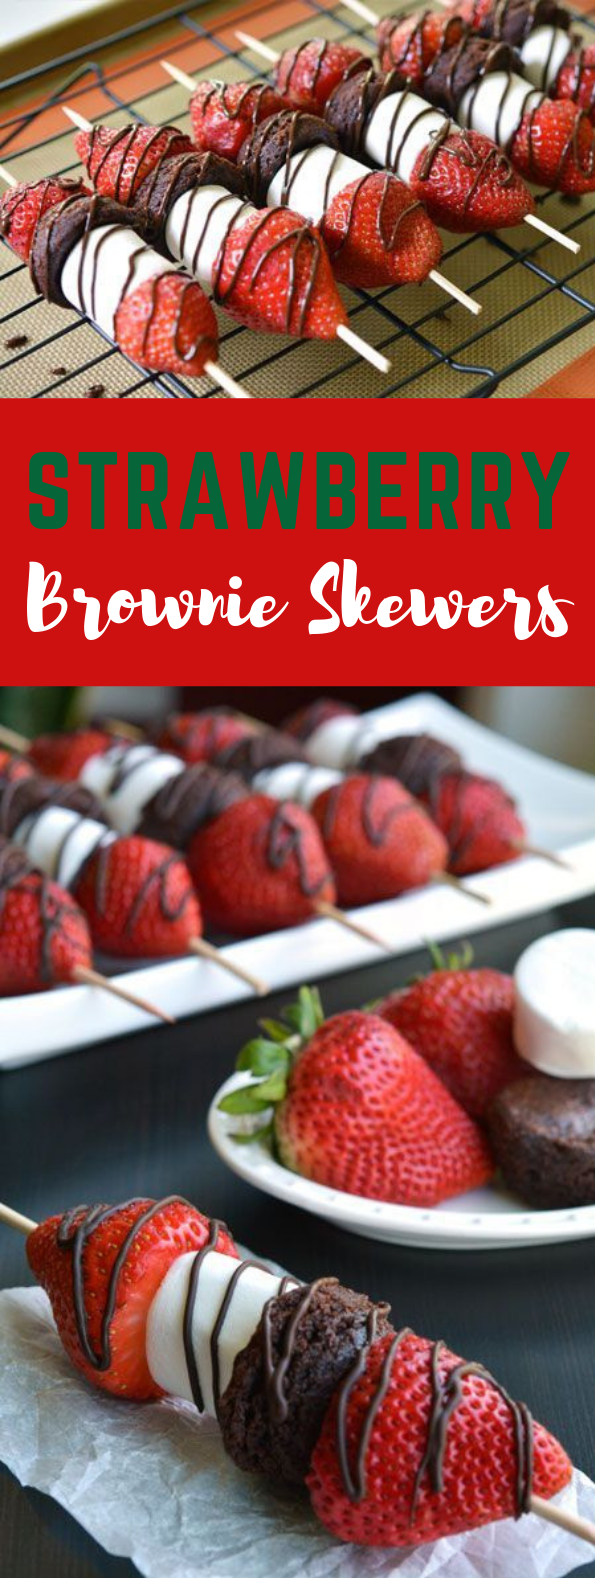 Strawberry Brownie Skewers #PartyRecipe #Strawberry